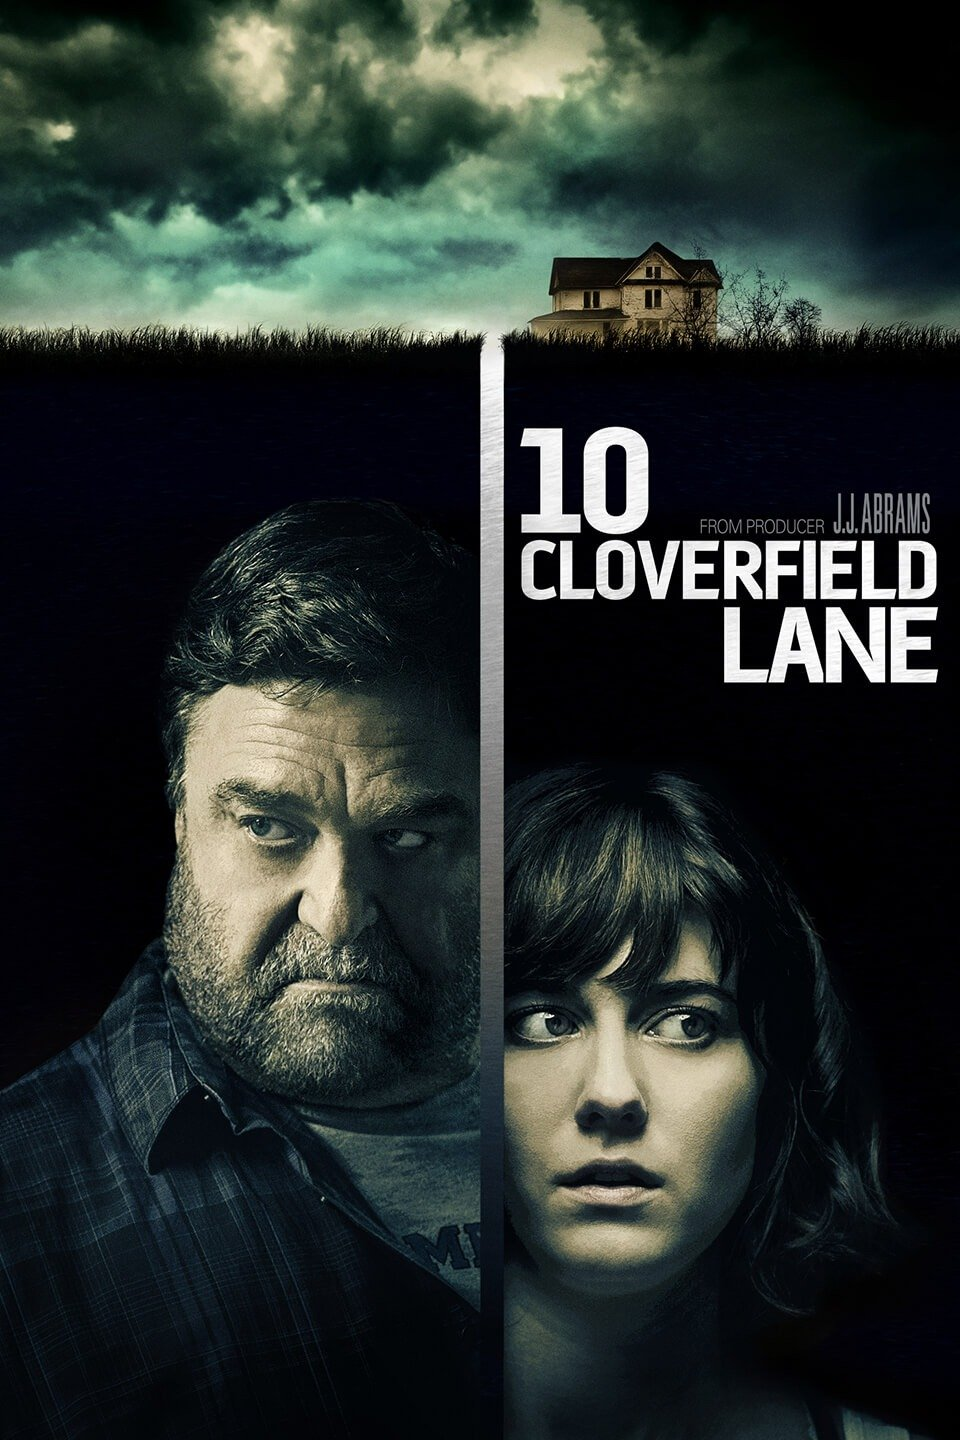 10 Cloverfield Lane 2016 300MB/900MB Hindi Full Movie Download BluRay